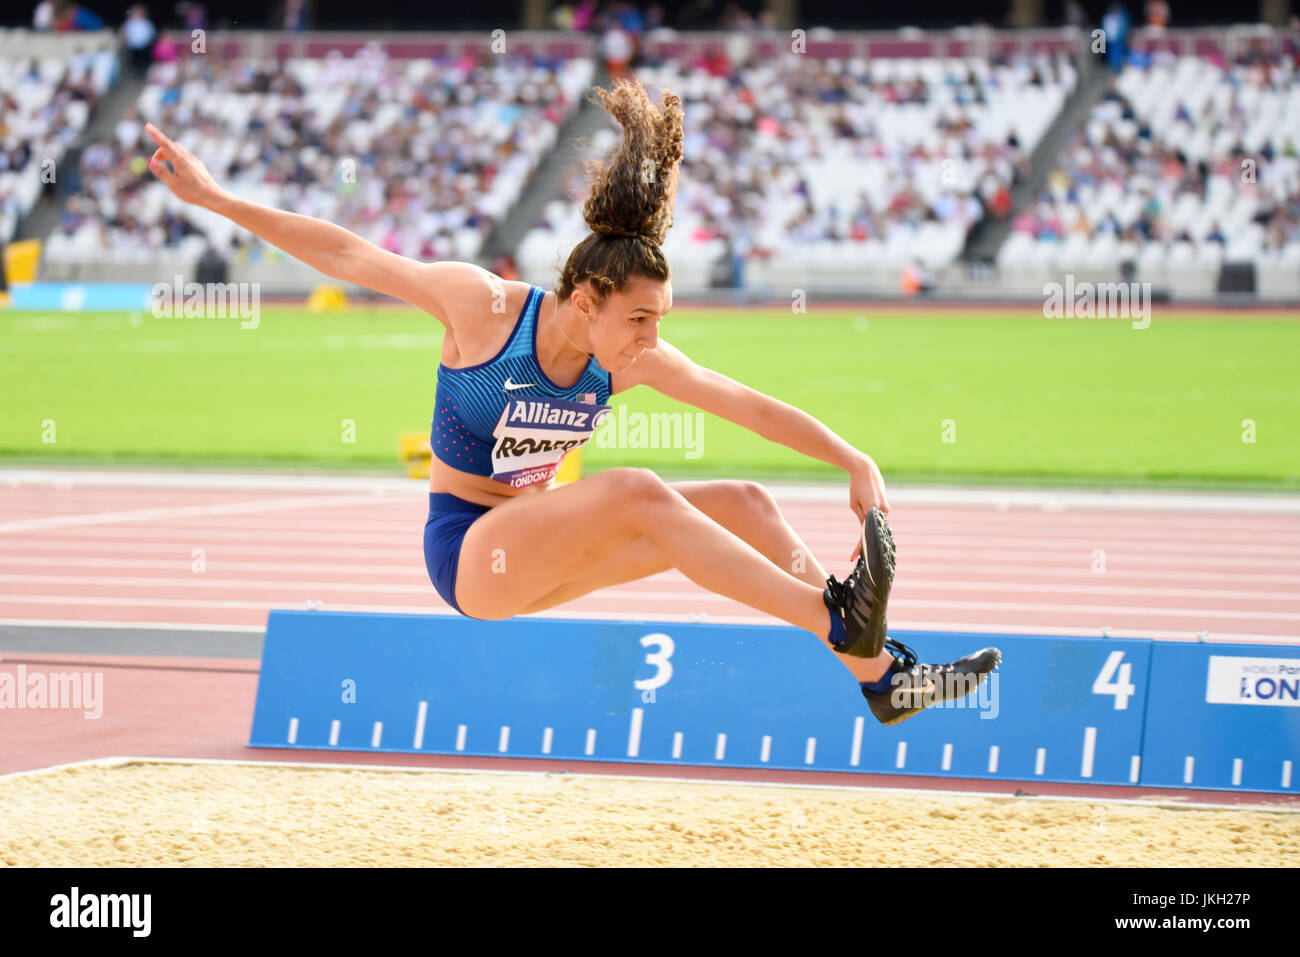 jaleen-roberts-long-jump-t37-athlete-competing-at-the-world-para-athletics-JKH27P.jpg